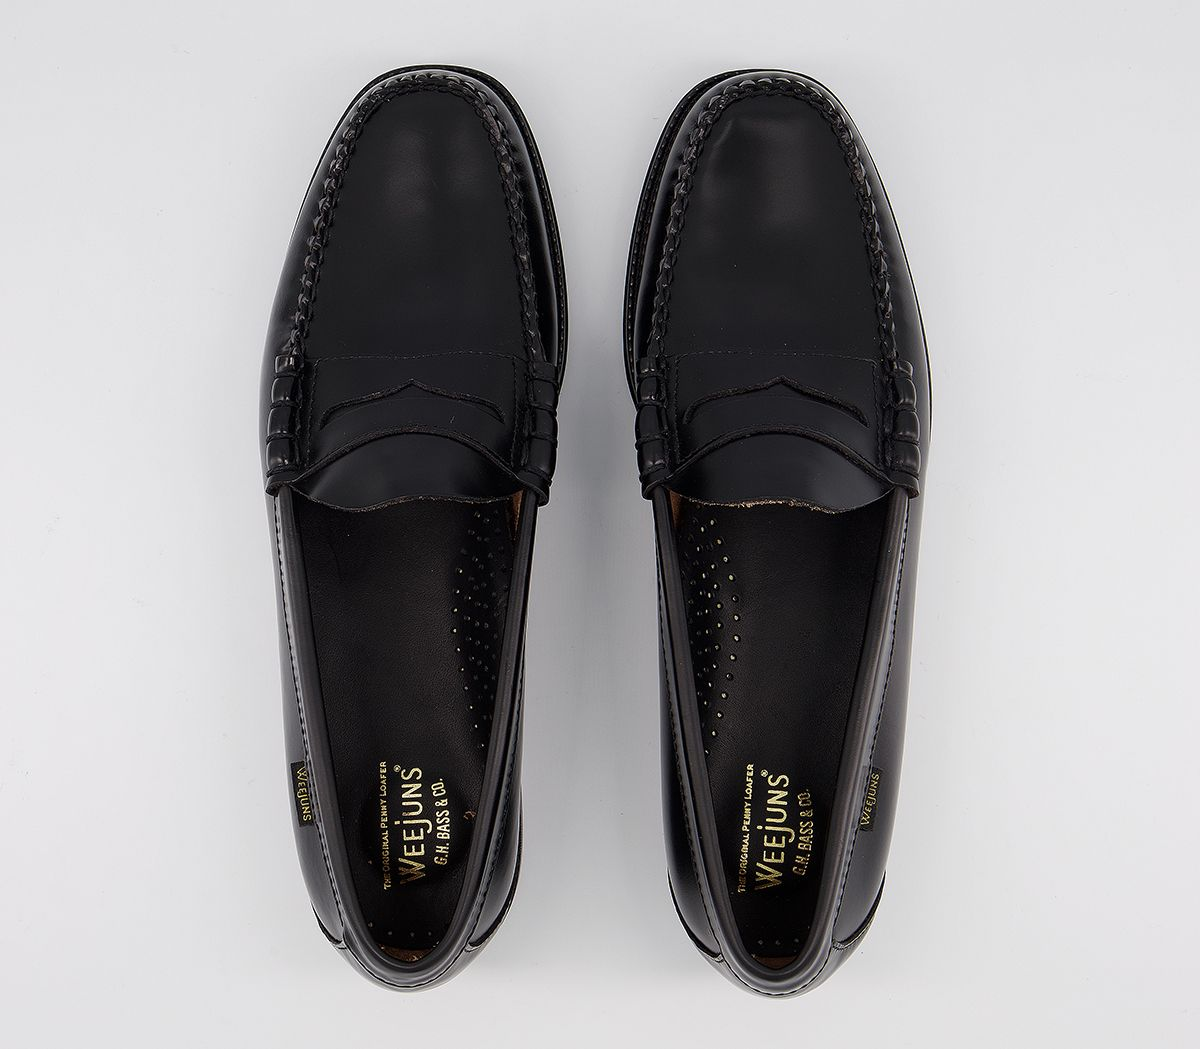 9c9317e46114 G.H Bass   Co Easy Weejun Penny Loafers Black - Smart